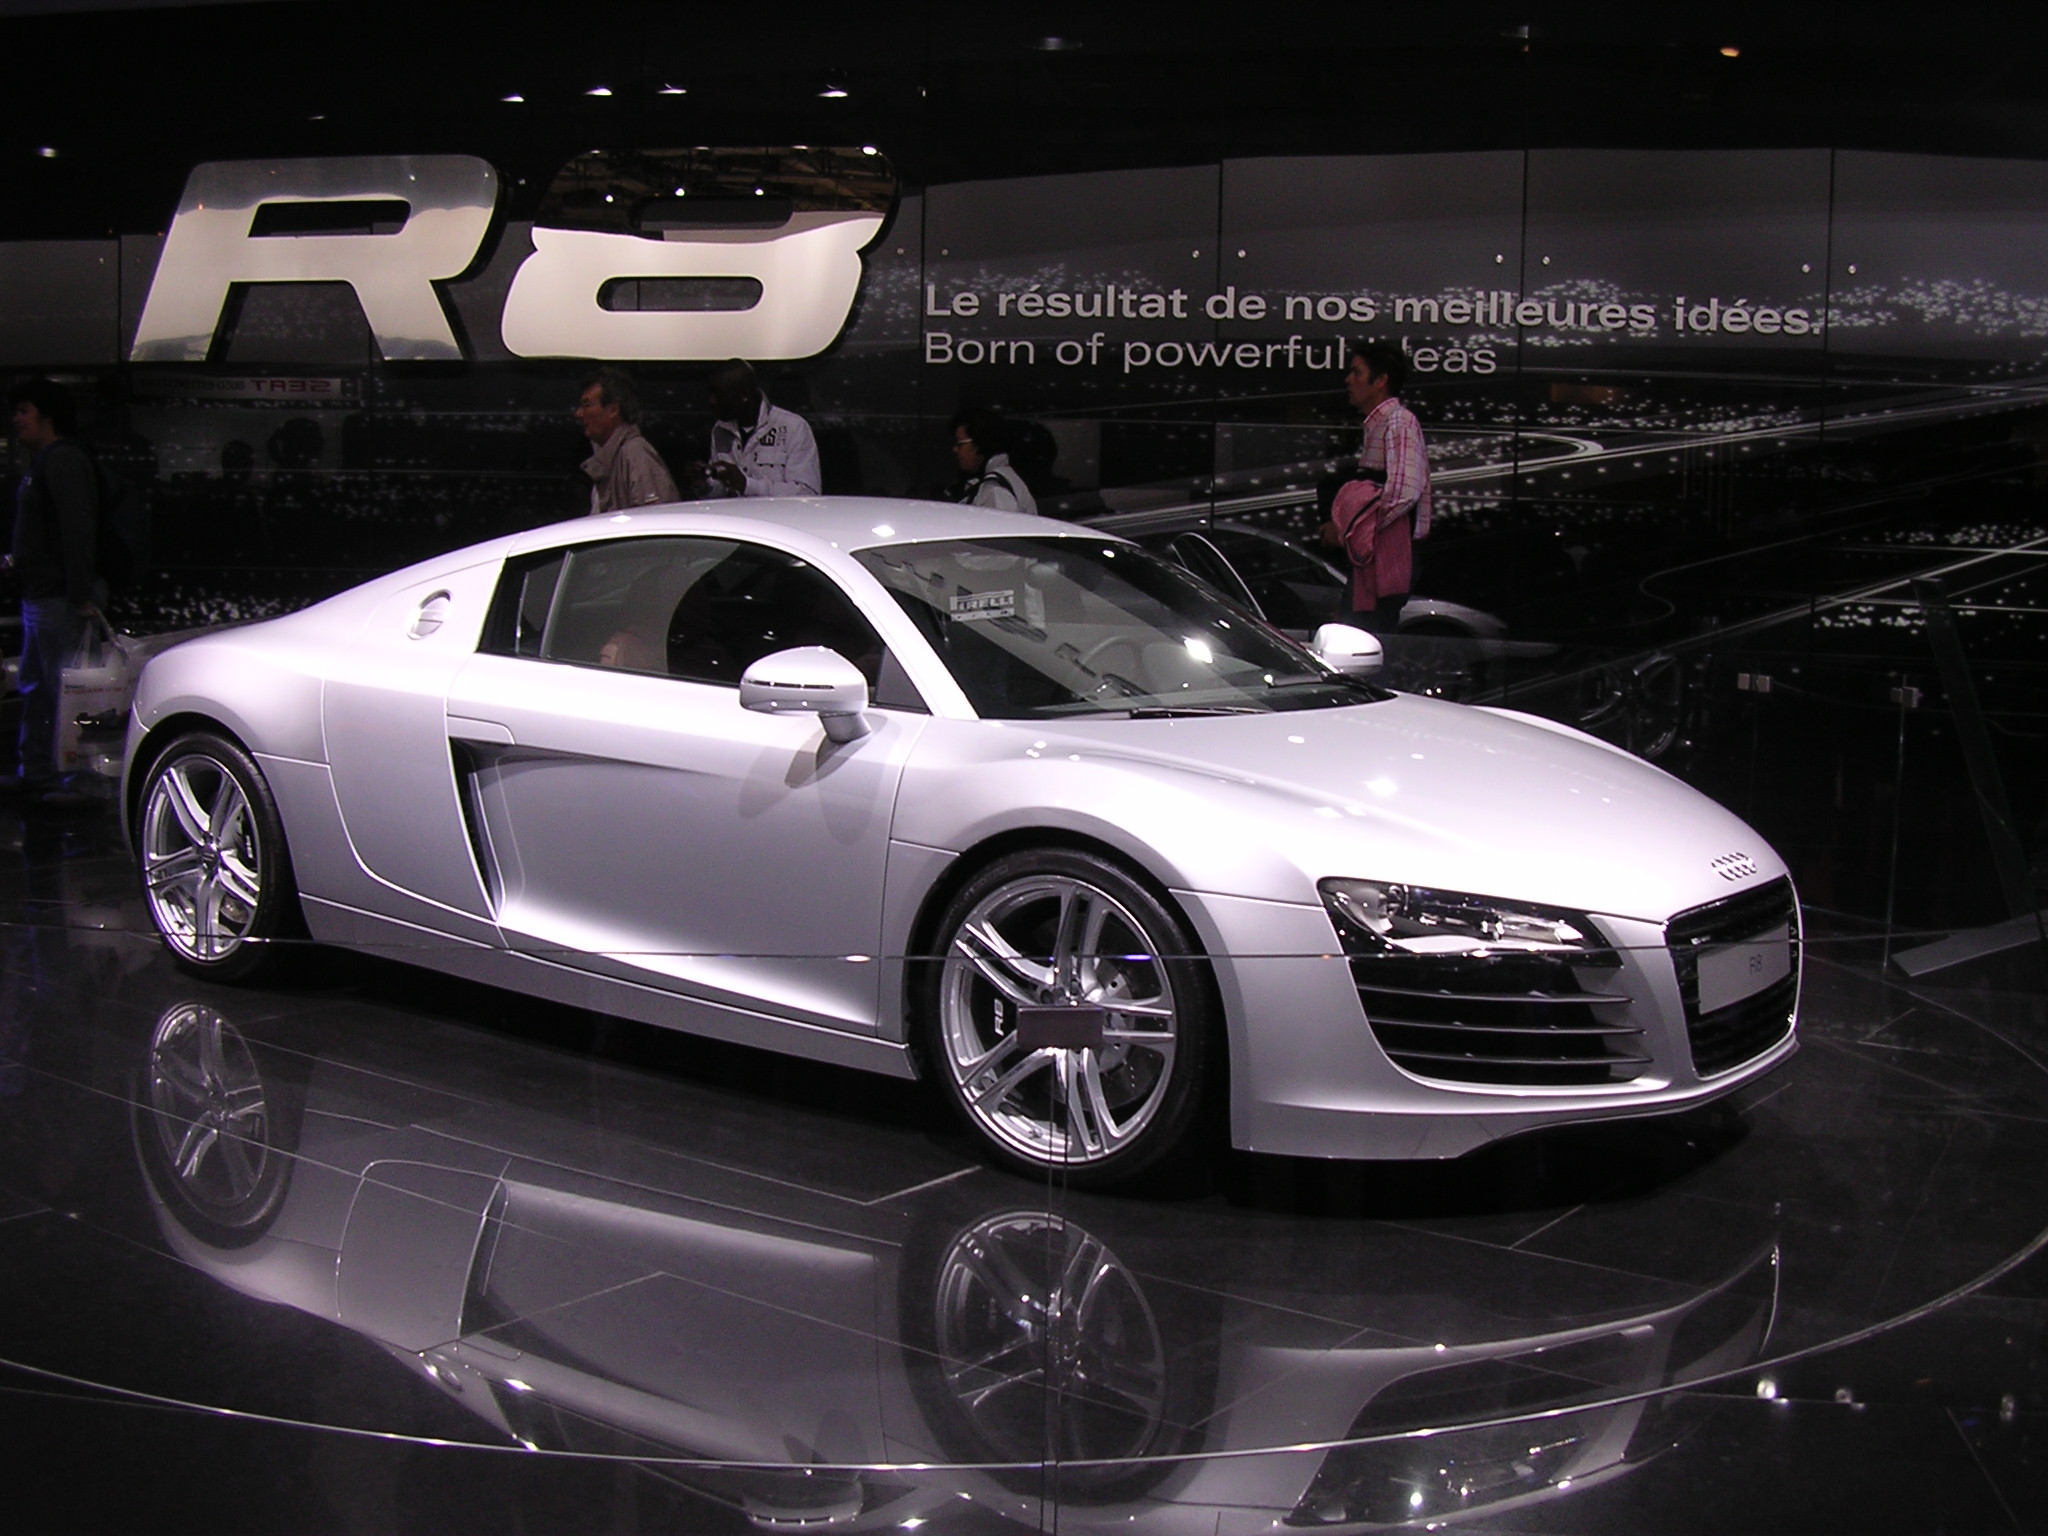 audi r8 photo de paris paris 75. Black Bedroom Furniture Sets. Home Design Ideas